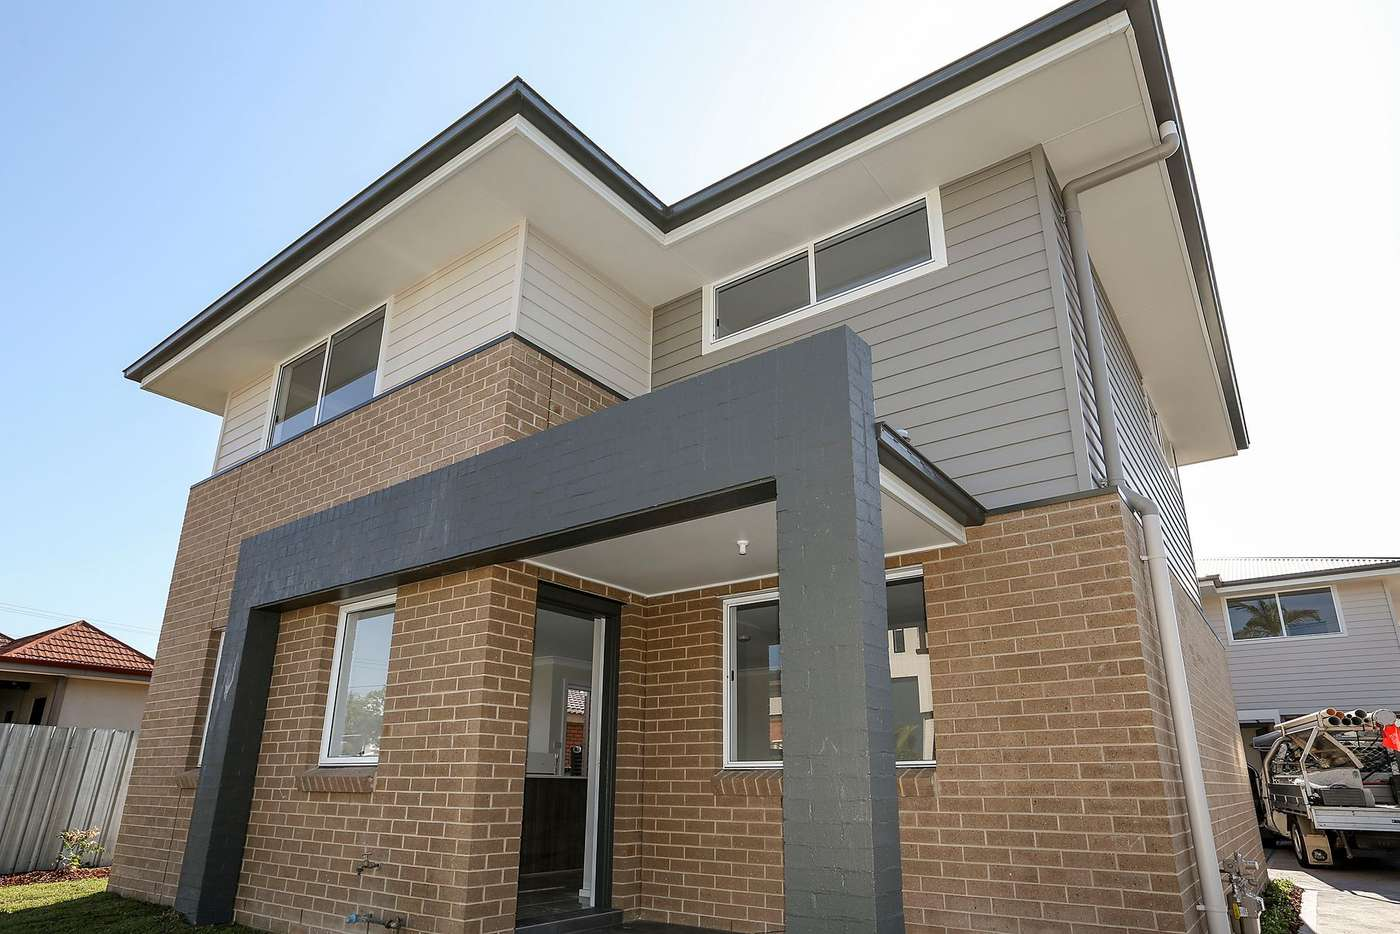 Main view of Homely townhouse listing, 1/2 Sparke Street, Georgetown NSW 2298